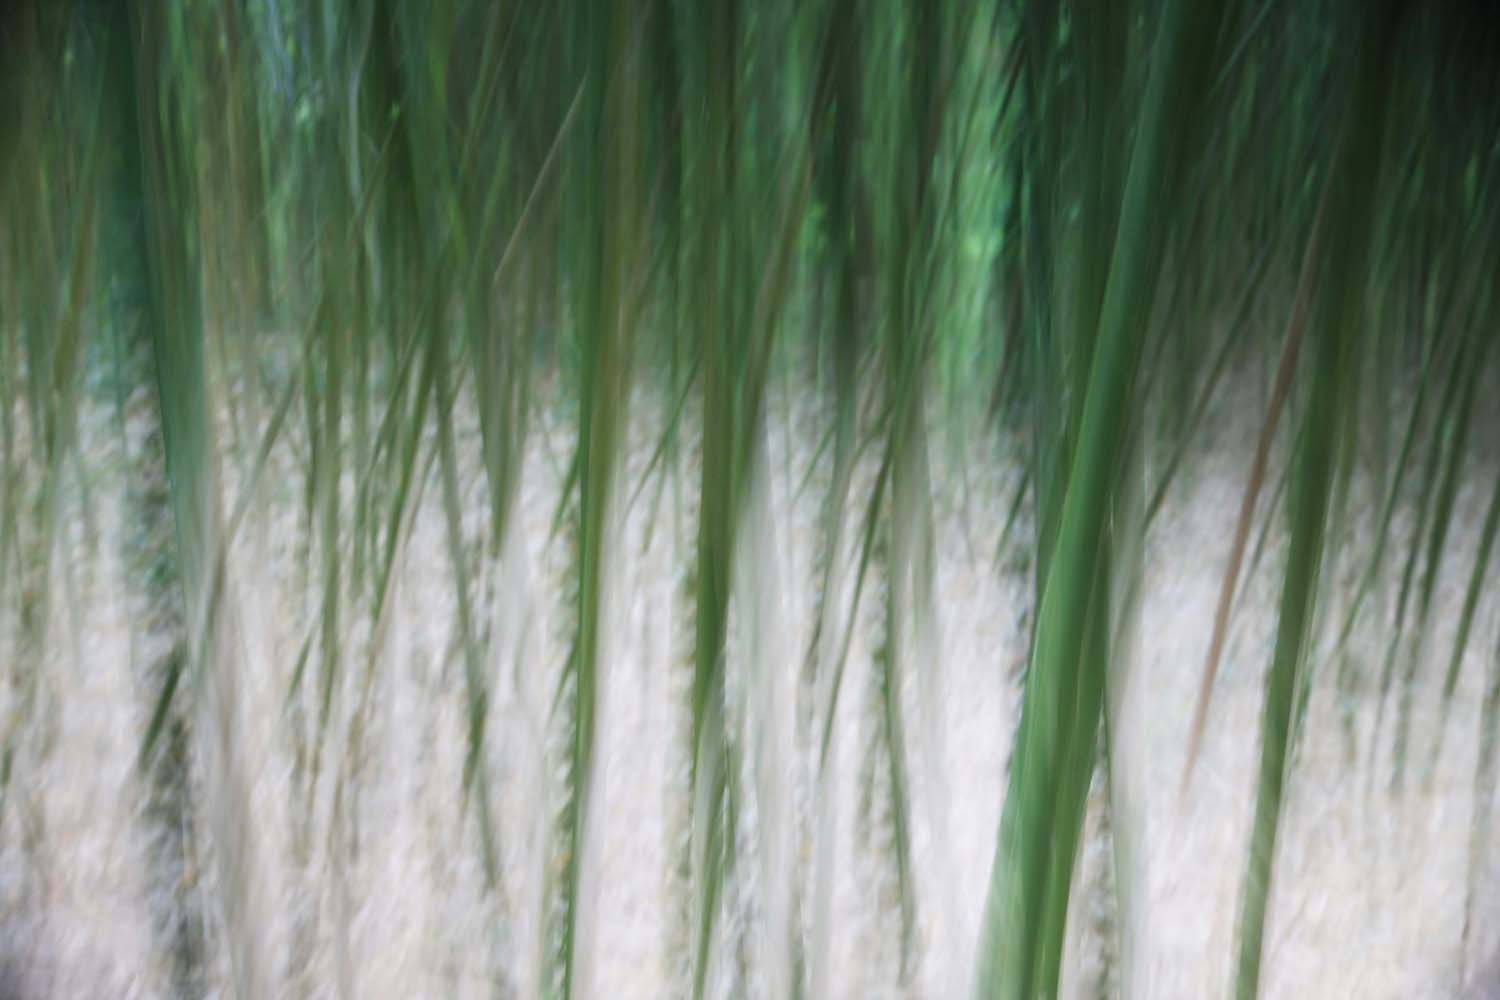 Impressions of Bamboo